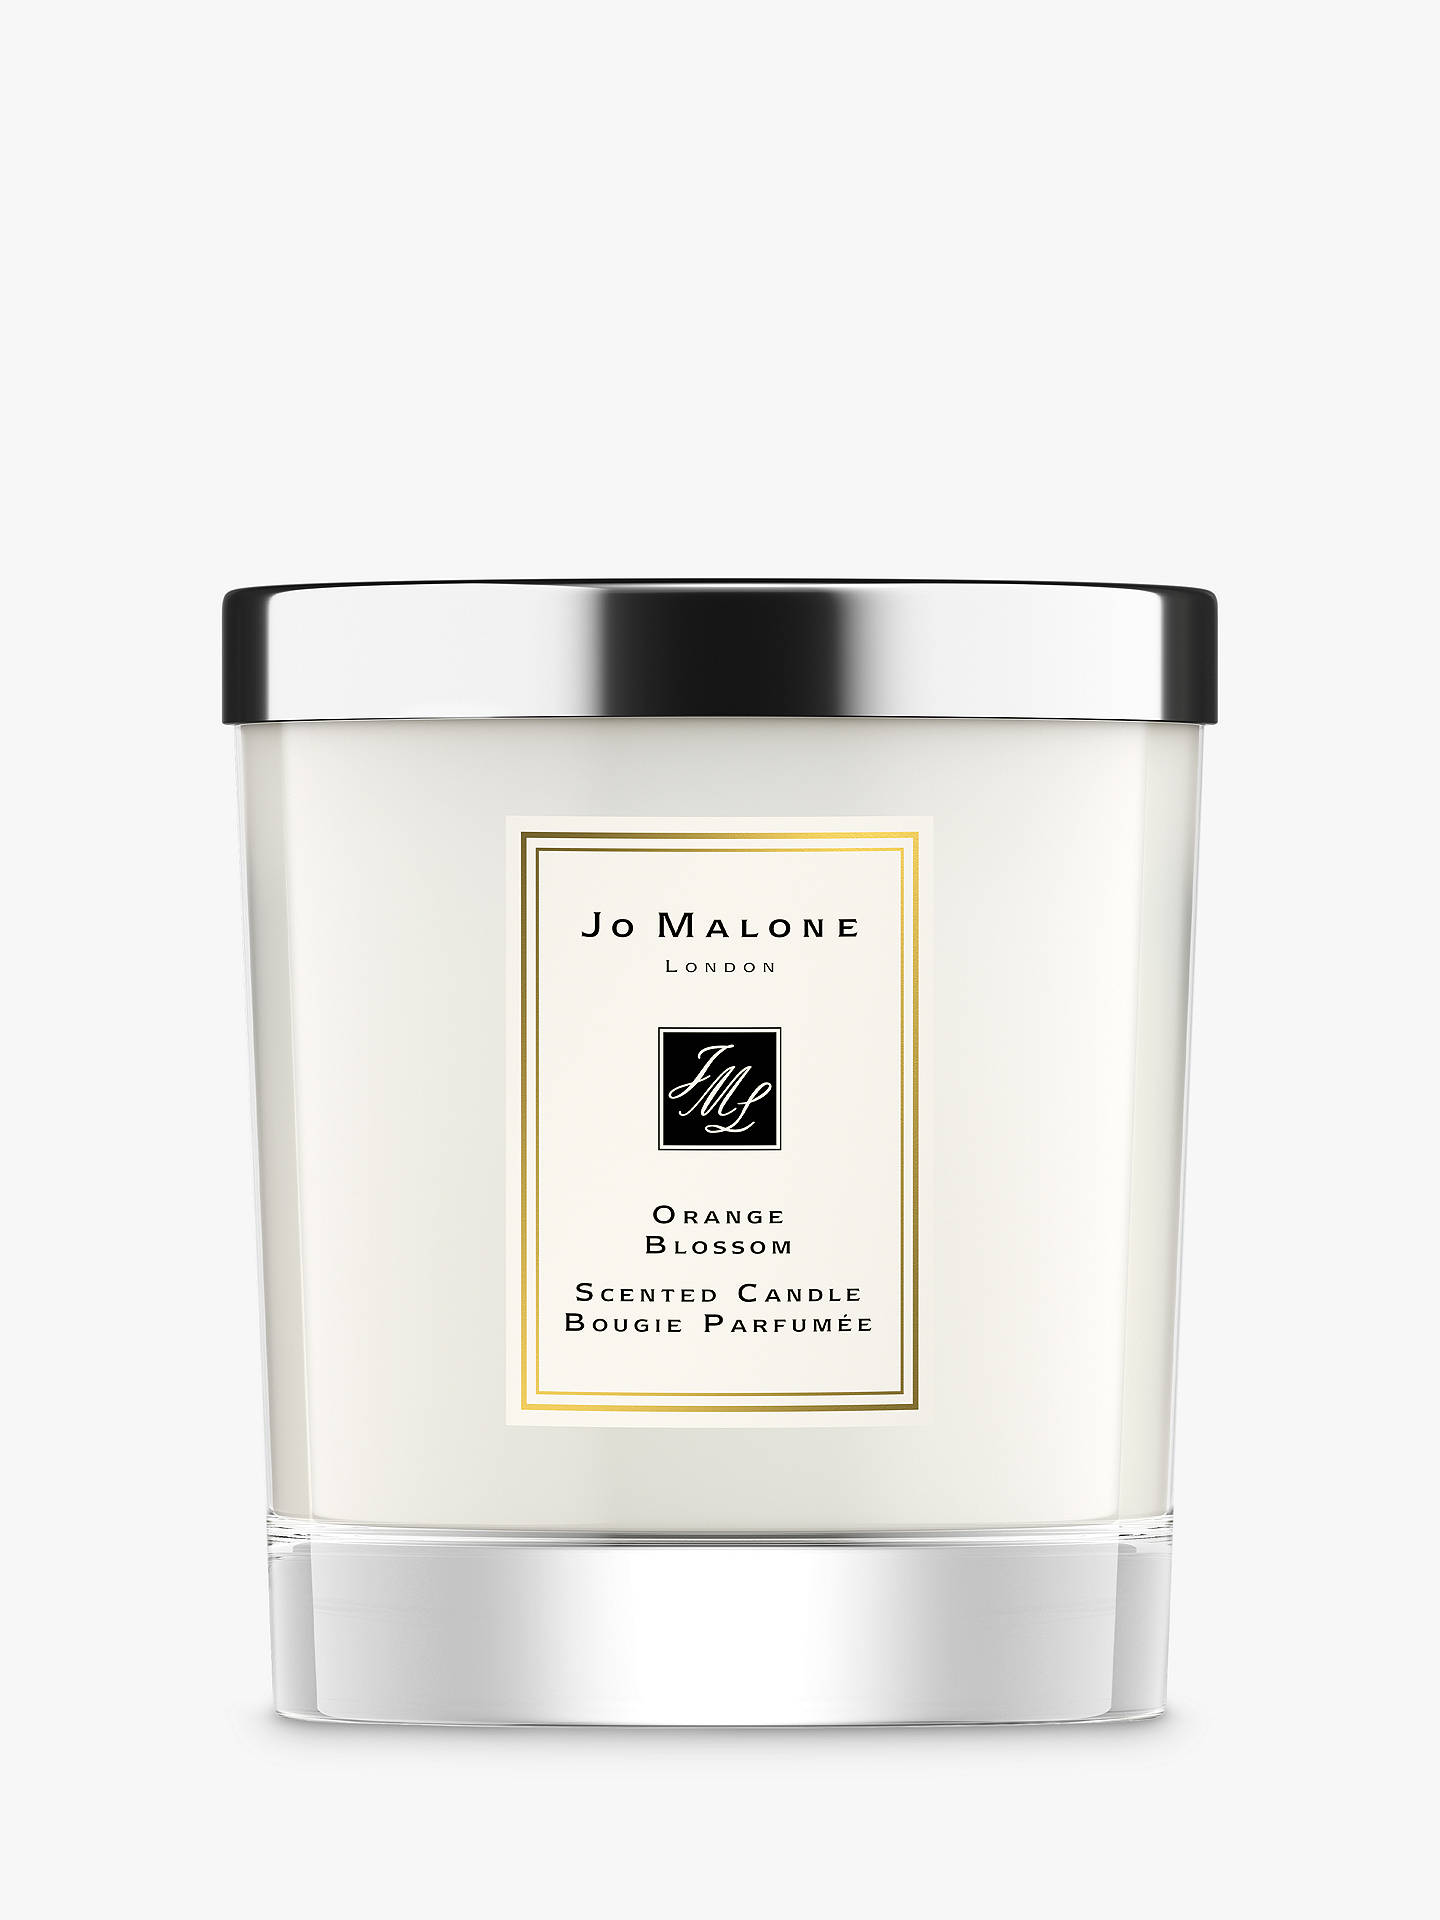 Buy Jo Malone London Orange Blossom Home Scented Candle, 200g Online at johnlewis.com